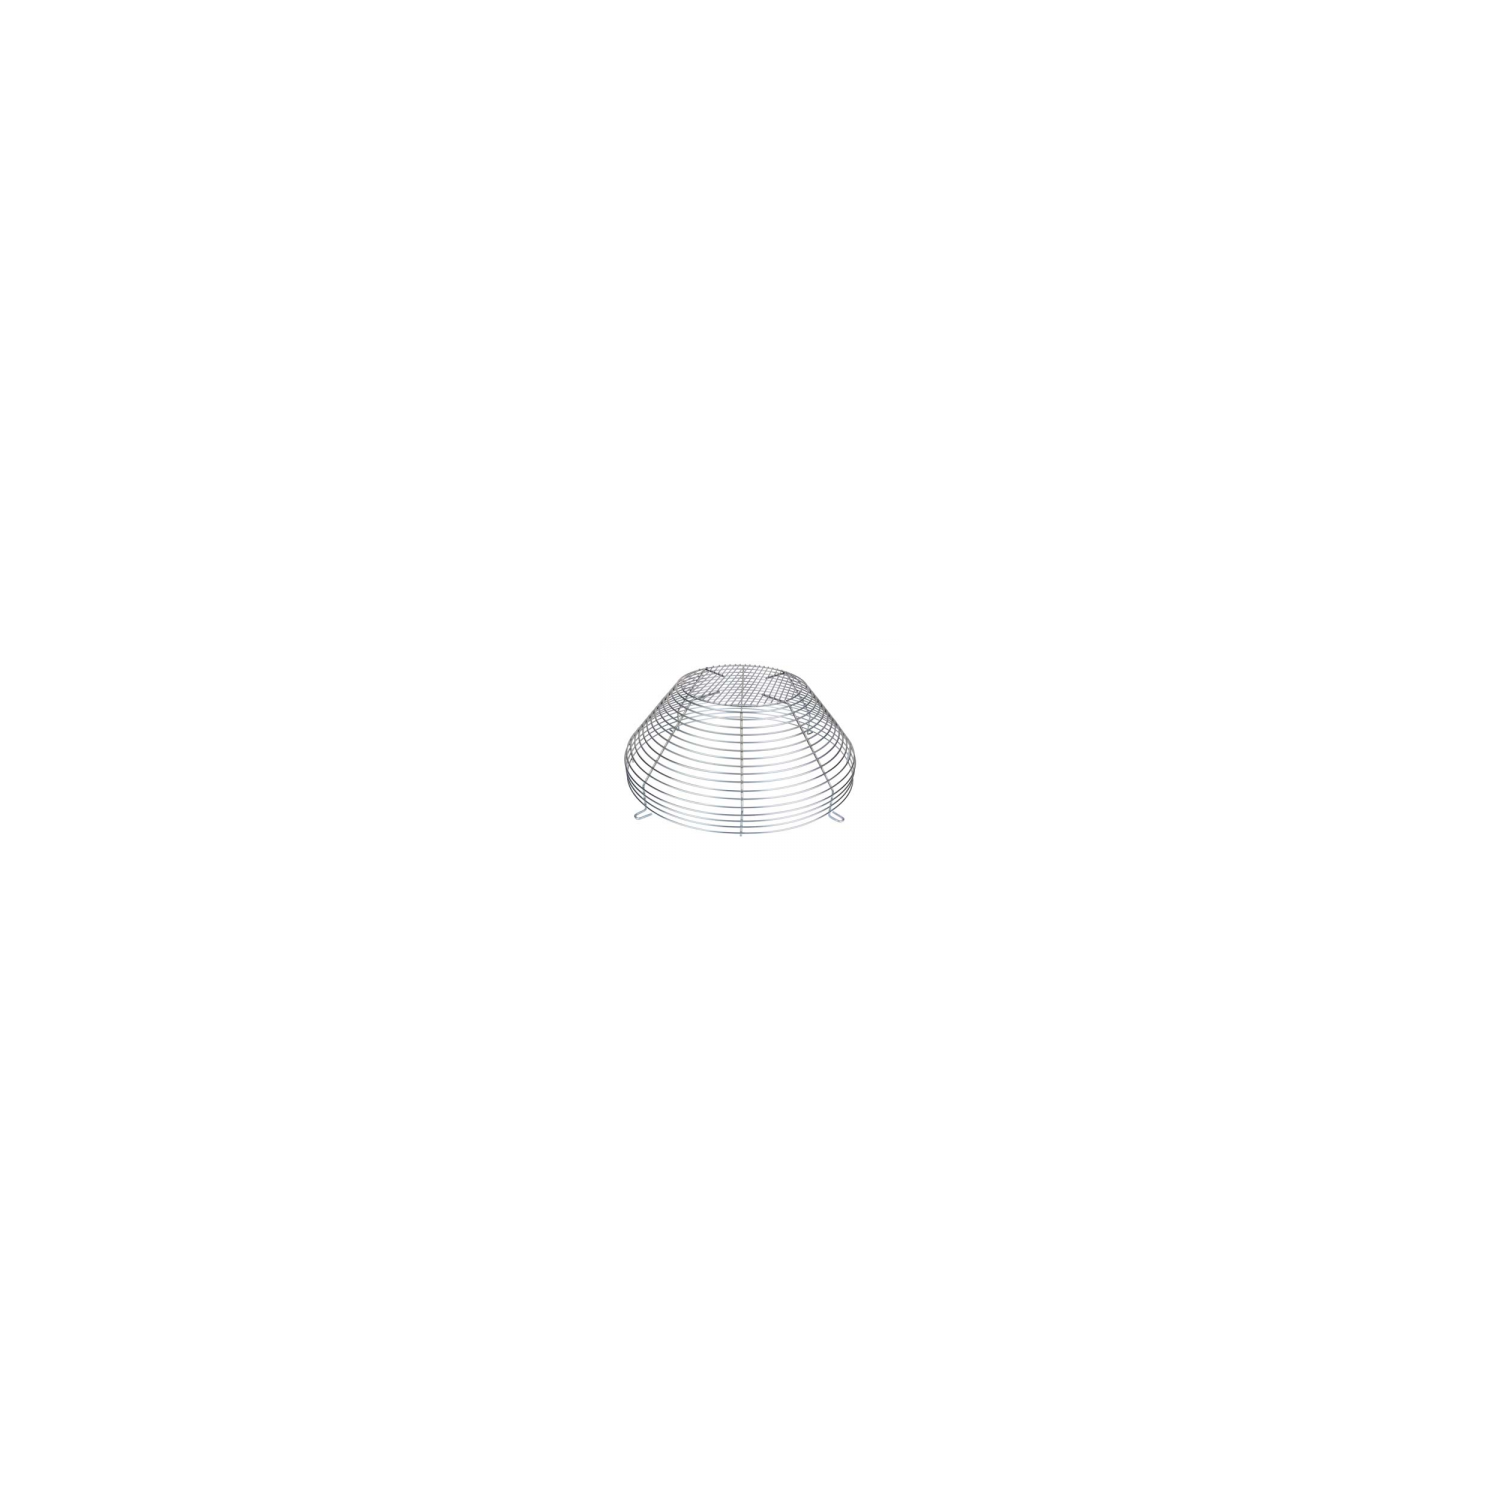 Grille de protection aspiration RP1 Ø1711